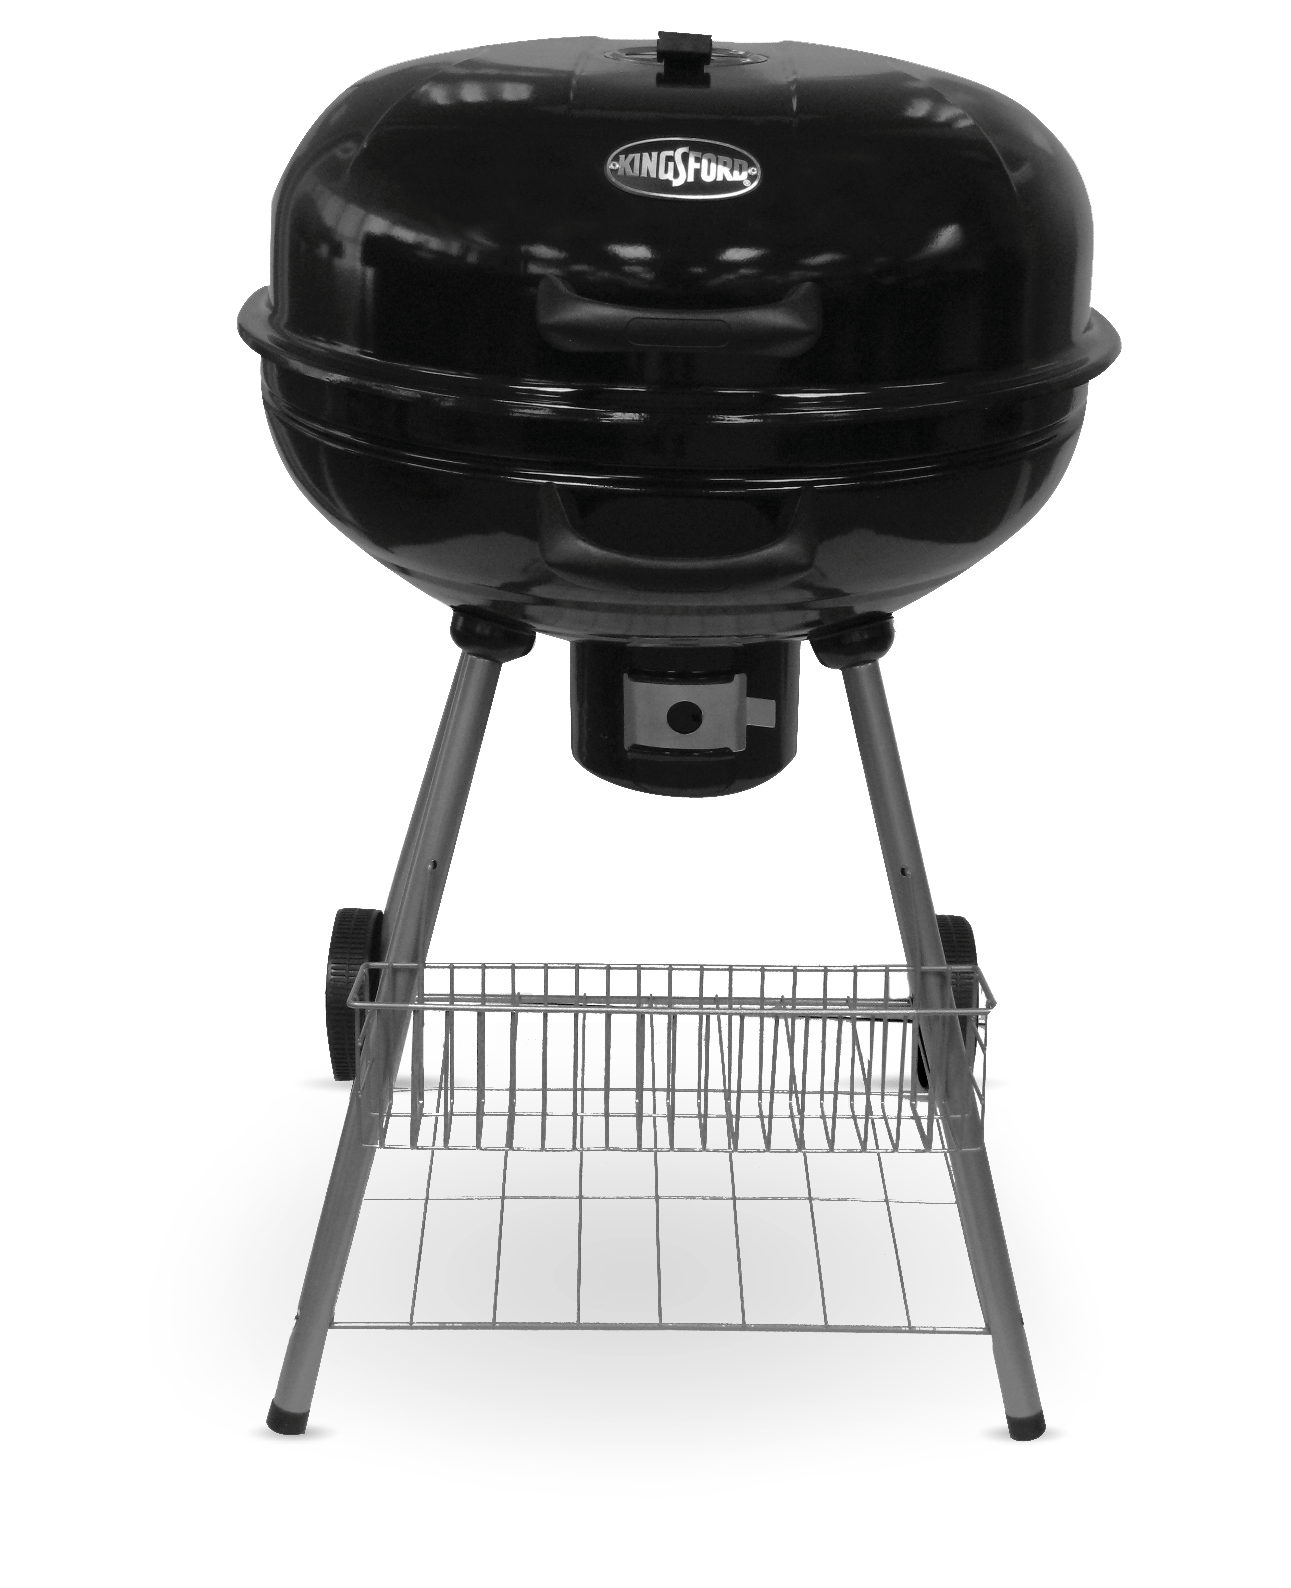 Small Barbecue Grill Kingsford Charcoal Grills Kingsford